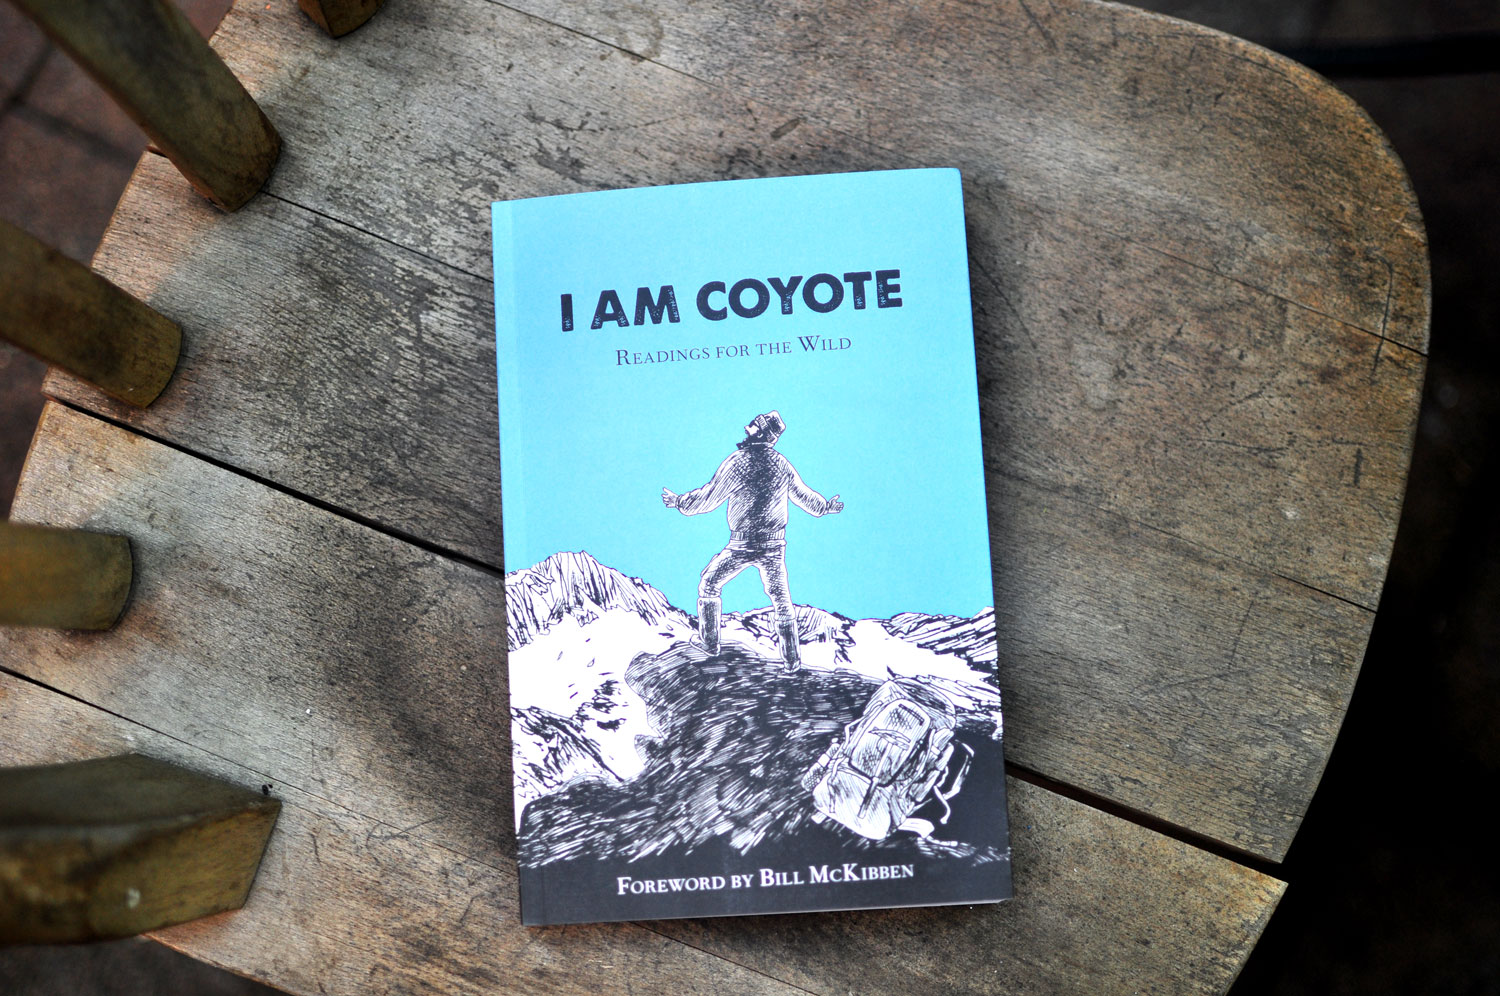 Cover of the I AM COYOTE: Readings for the Wild book with an illustration of a man on top of a mountain yelling out.